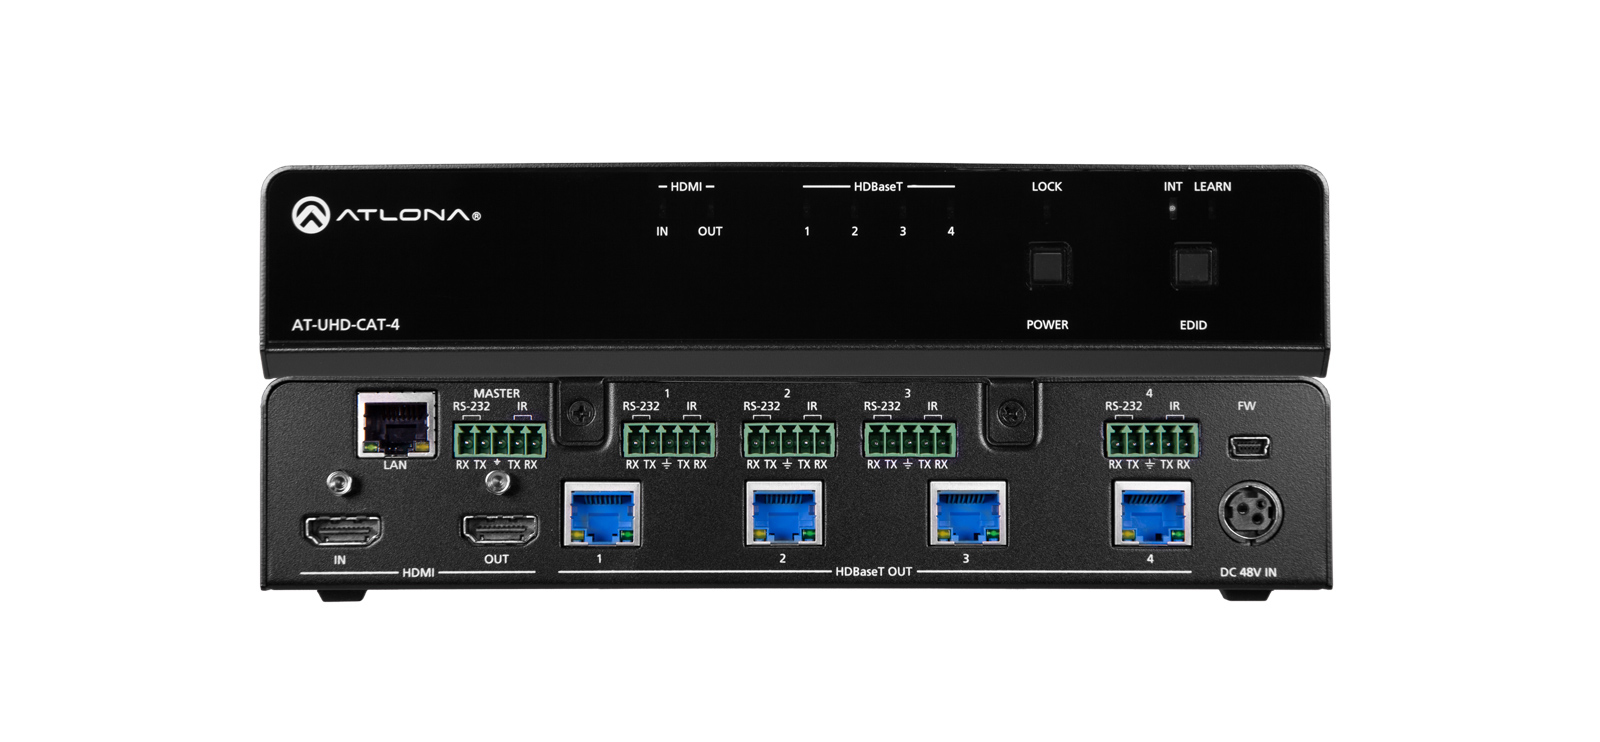 ATLONA AT-UHD-CAT-4 10.2 GBPS, 4K, CAT5E - 6 6A 7, HDMI, 44X222.25X261 MM